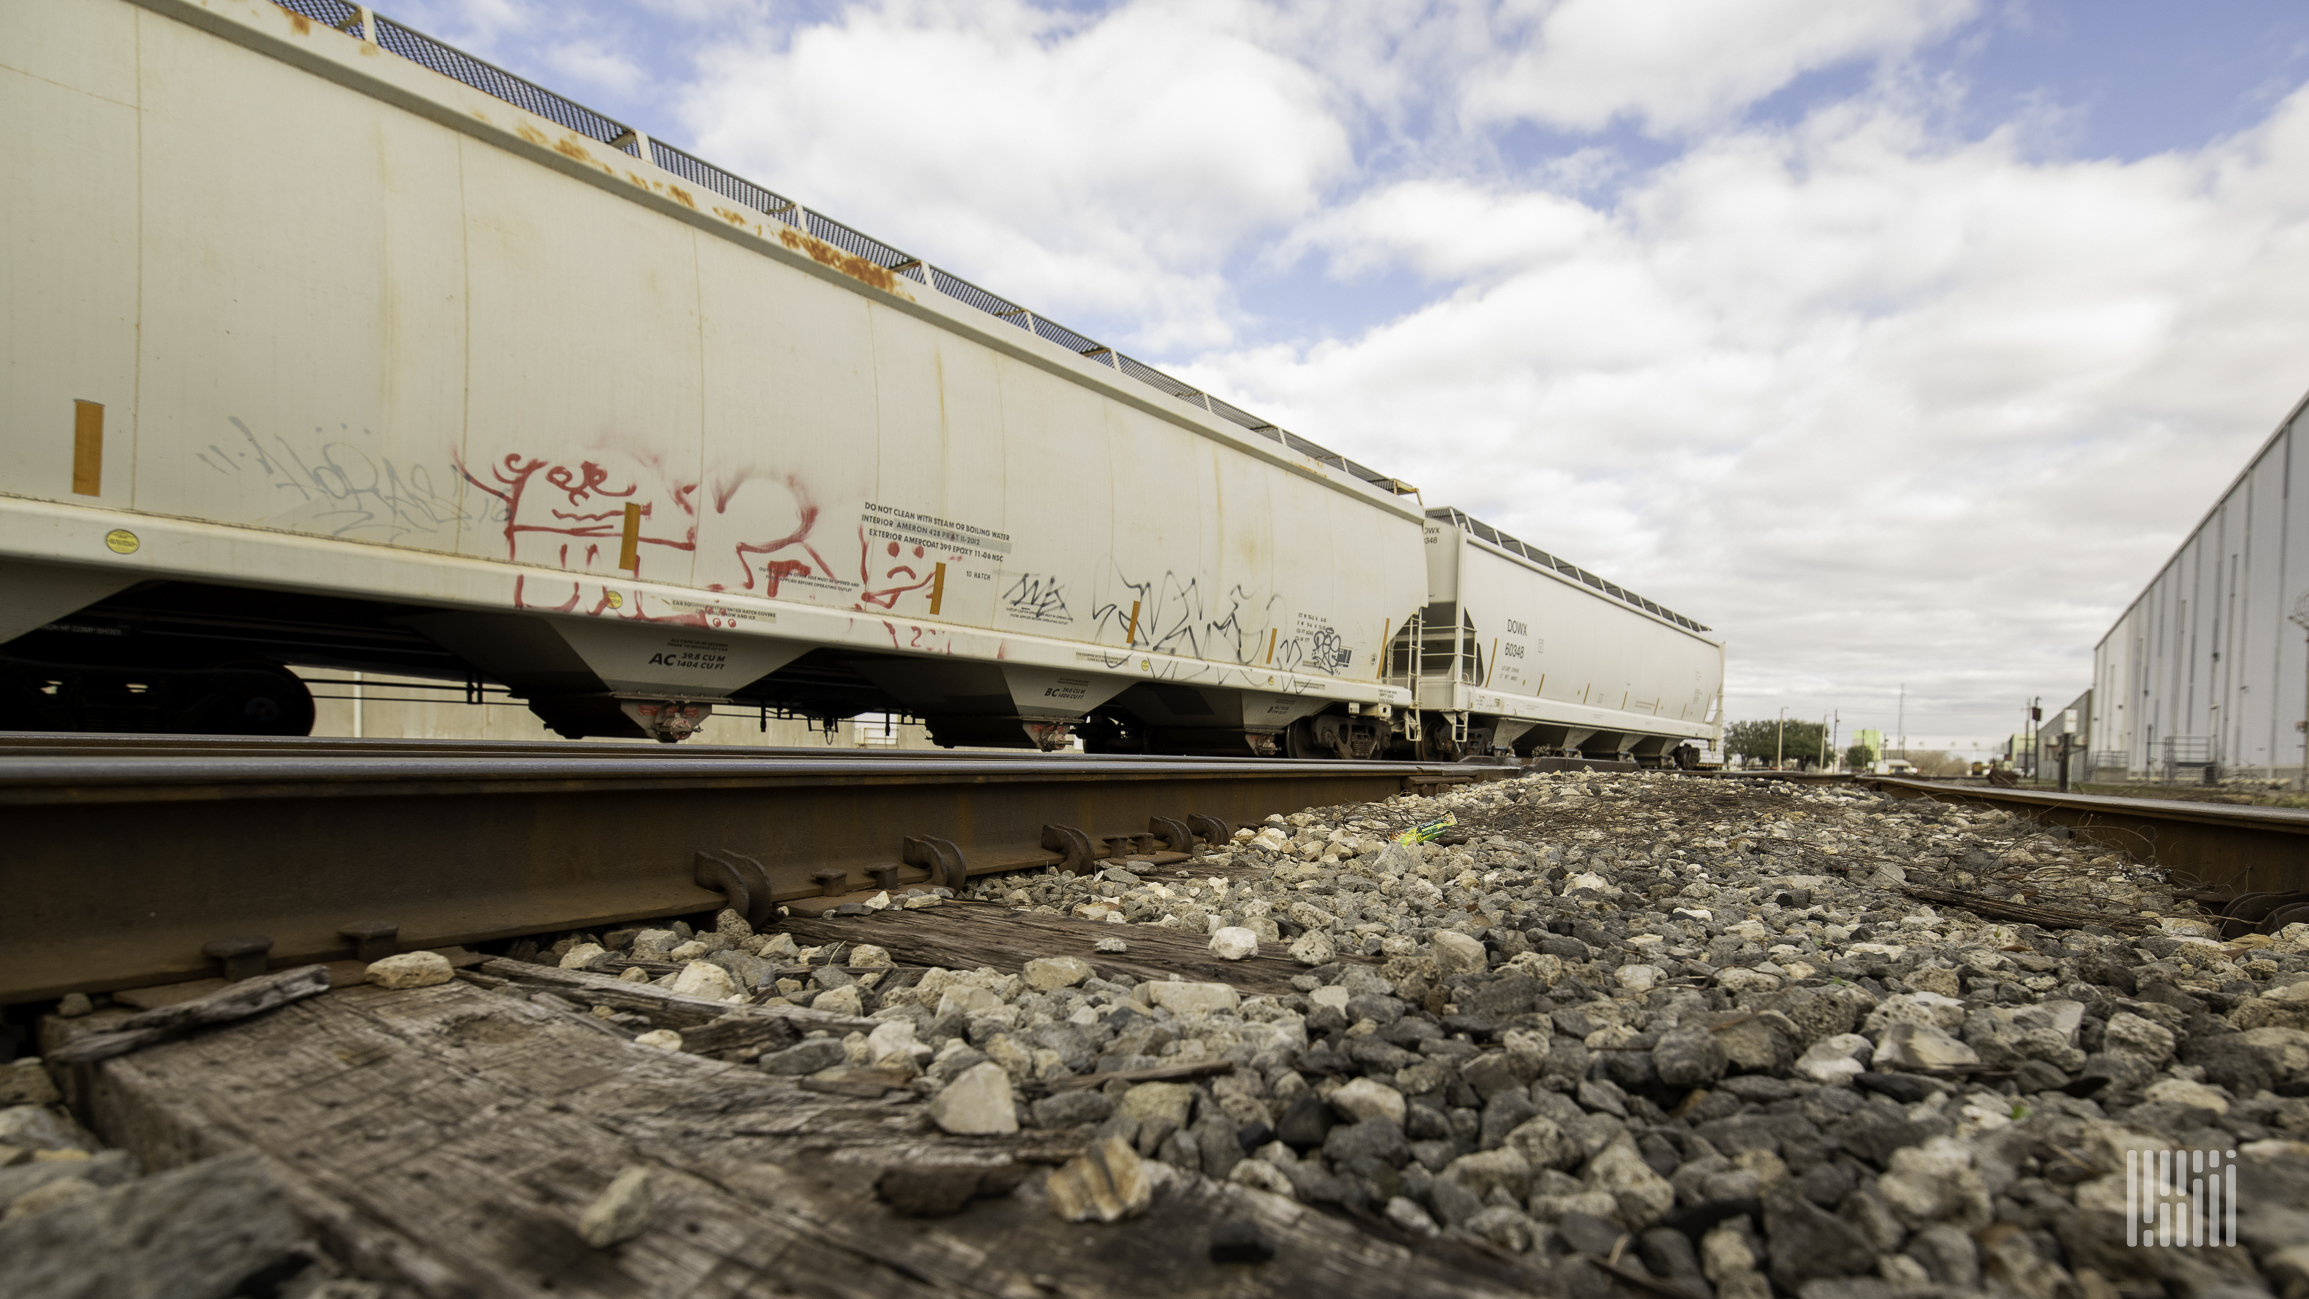 A photograph of trains of hopper cars sitting in a rail yard.